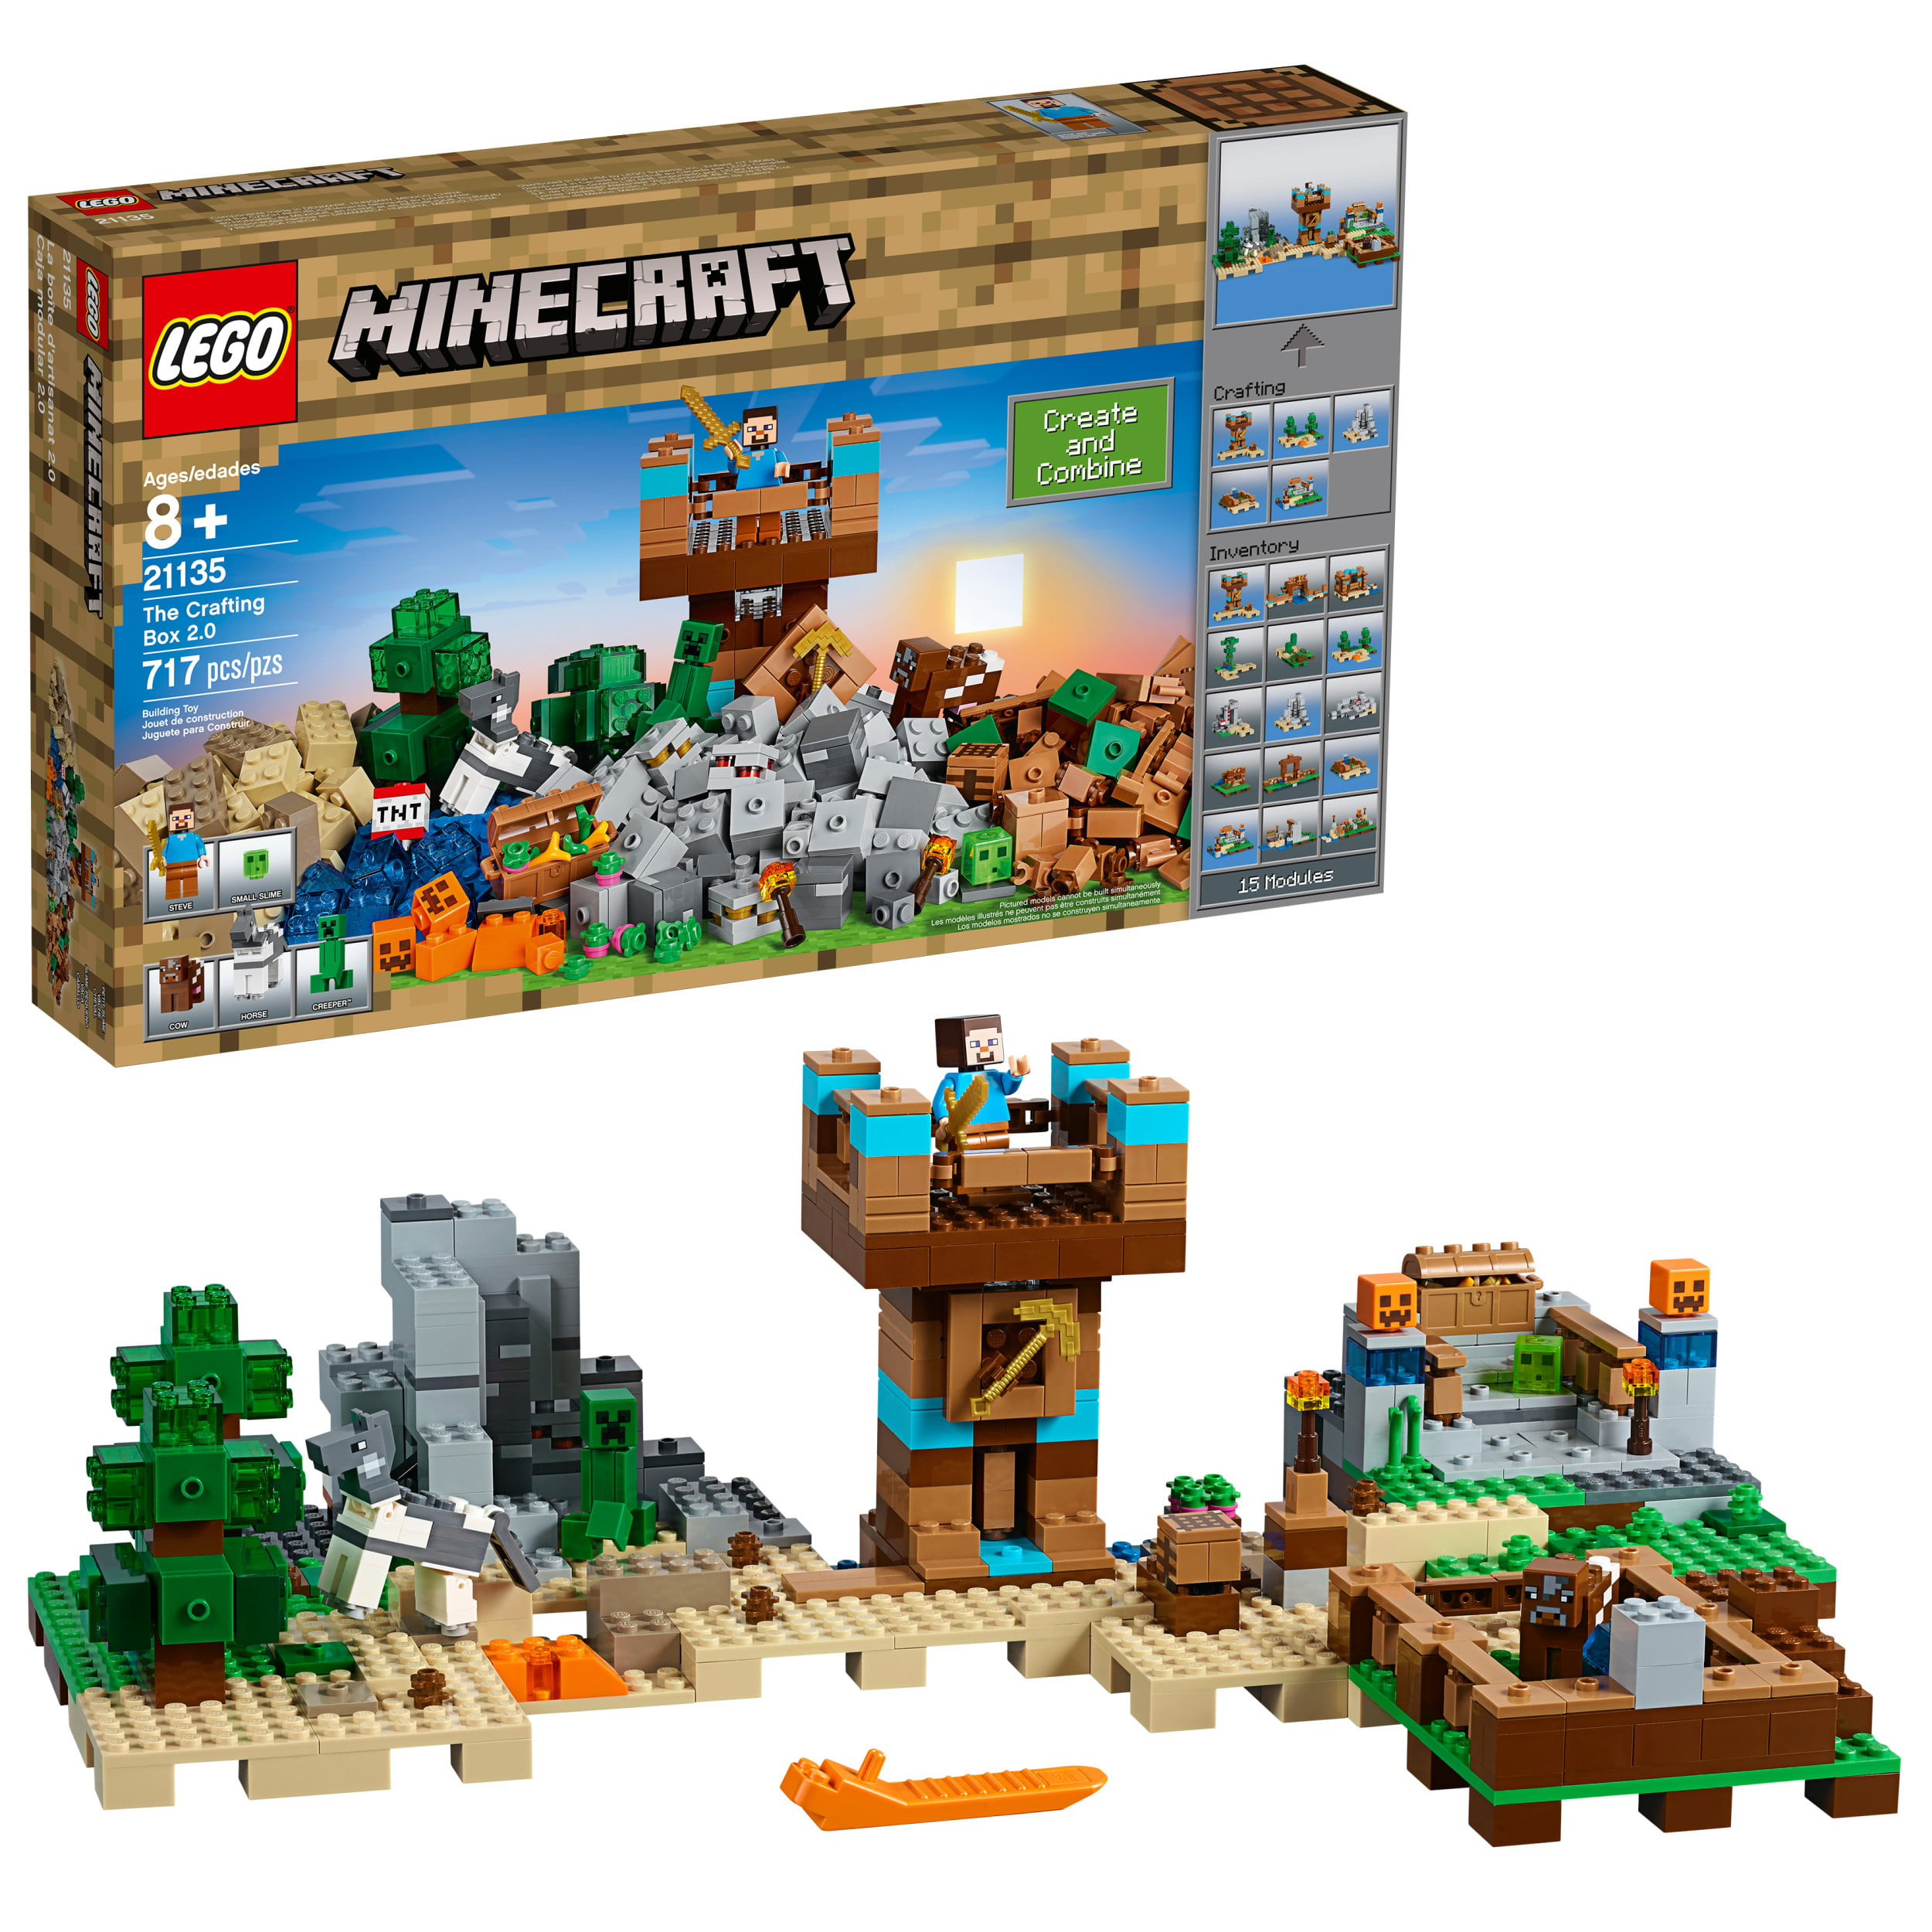 Lego Minecraft The Crafting Box 2.0 21135 by LEGO System Inc